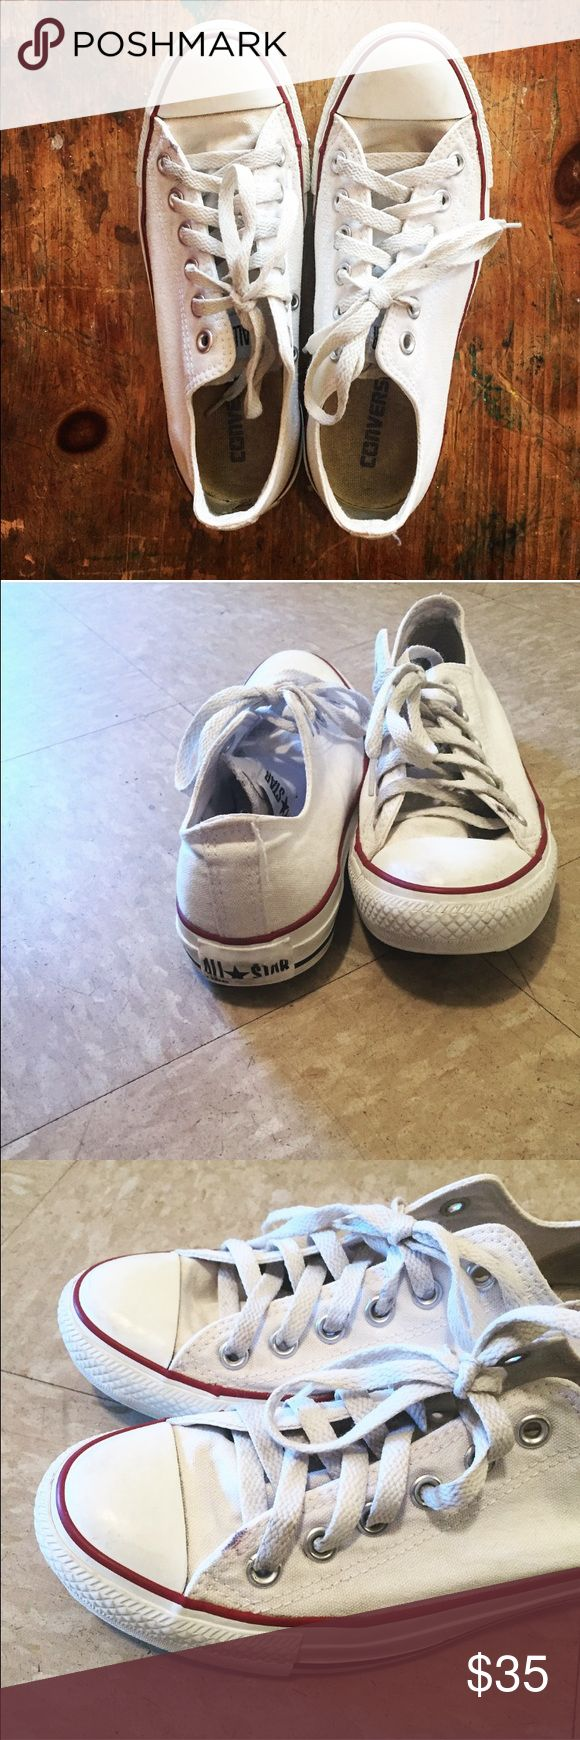 White converse size 7 Clean white low top converse. Great condition. Small black mark near the beginning of laces on left shoe (shown in picture). Converse Shoes Sneakers